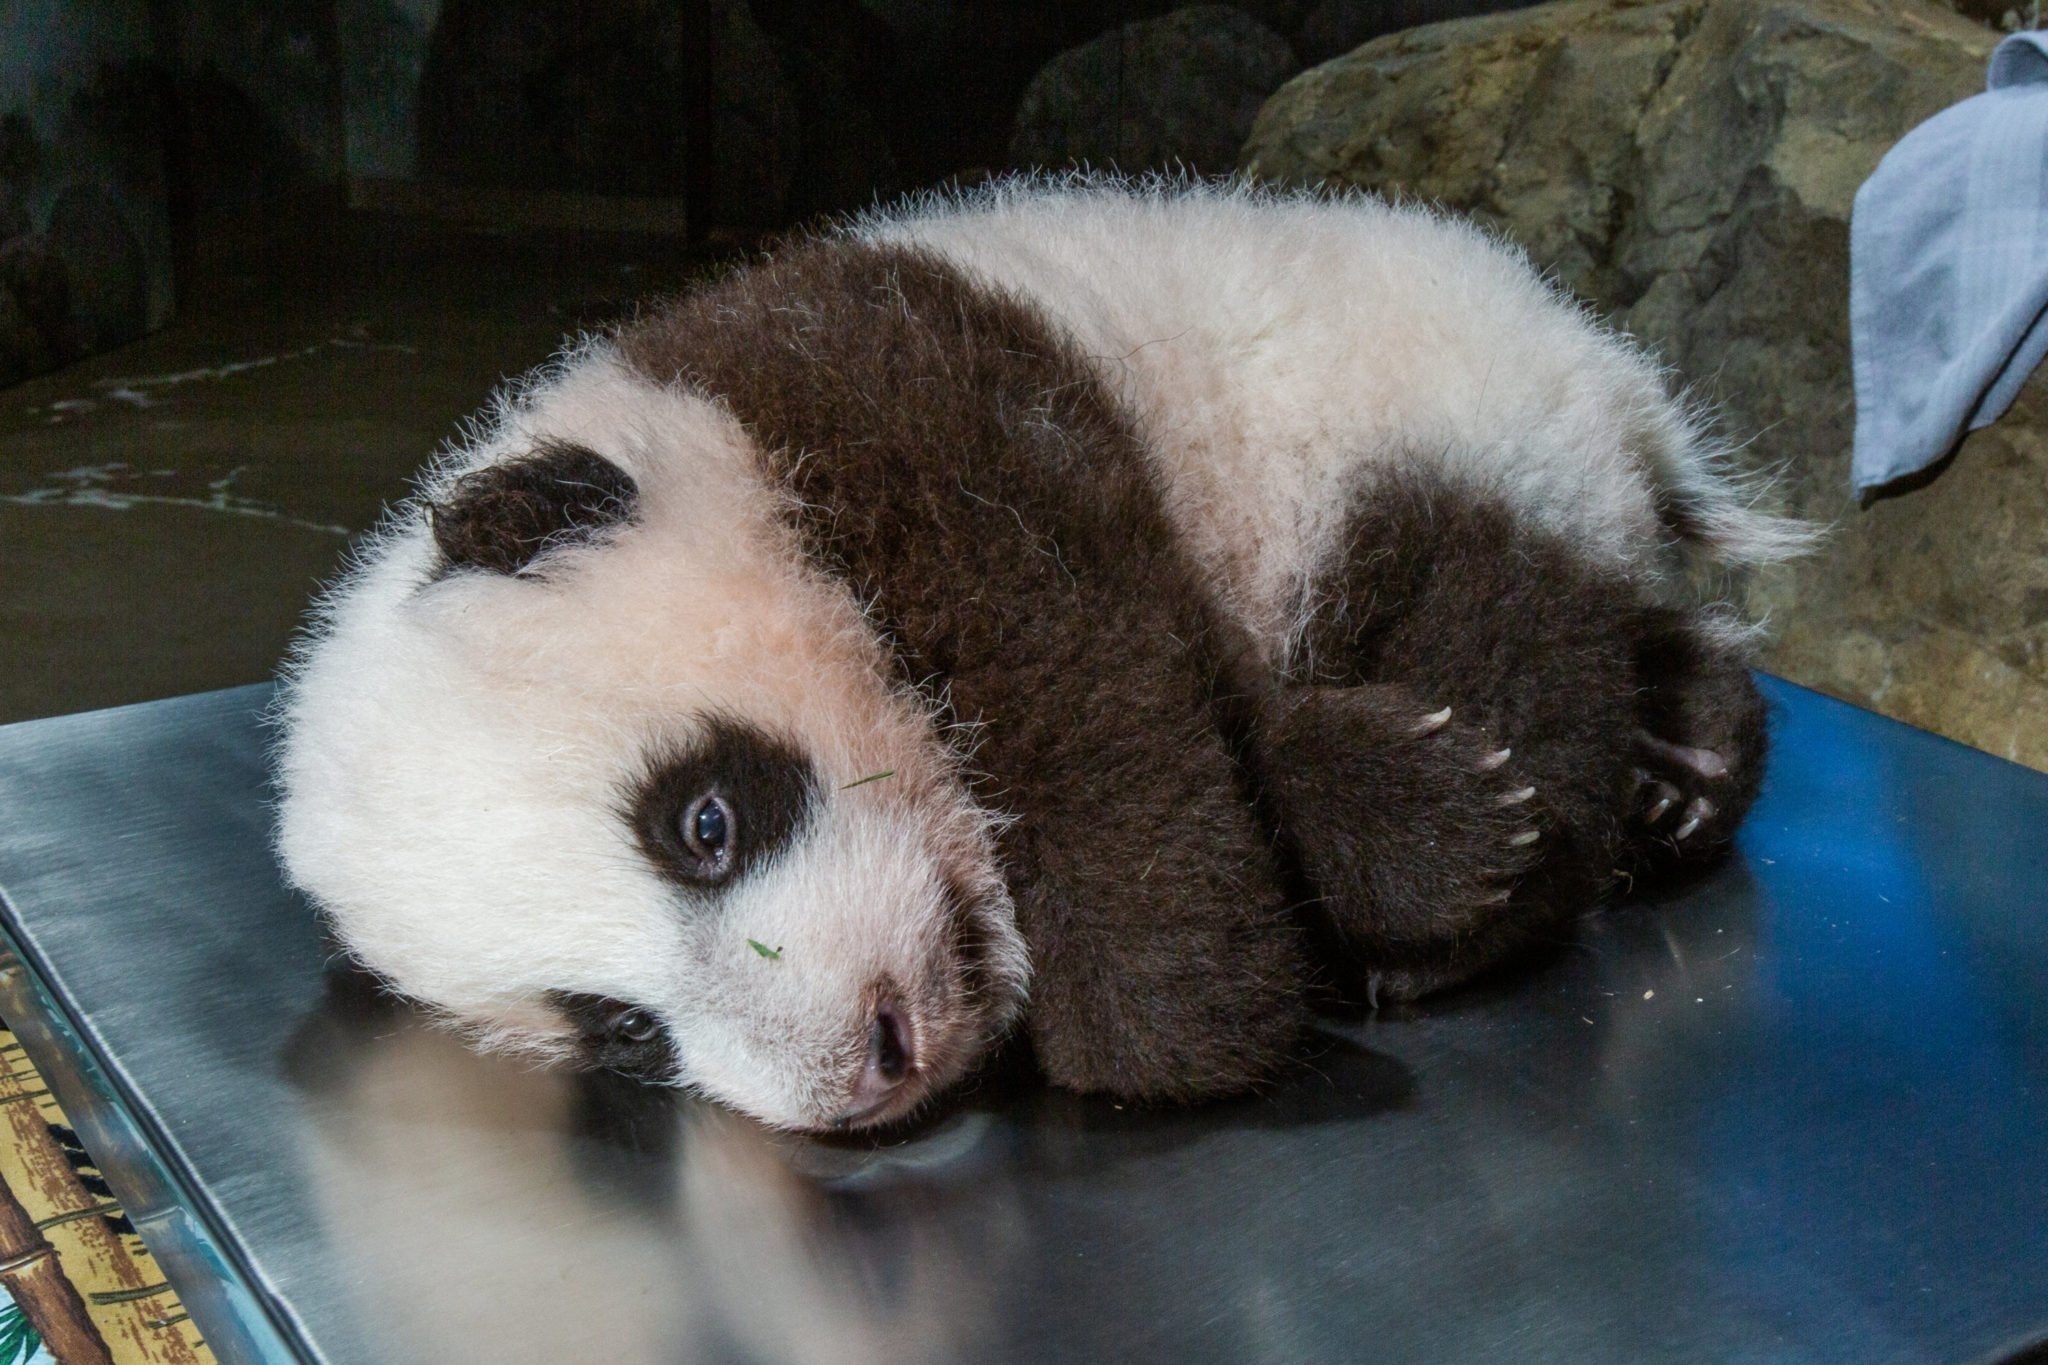 We've also been in the fetal position all week. Photo courtesy of Smithsonian National Zoo.